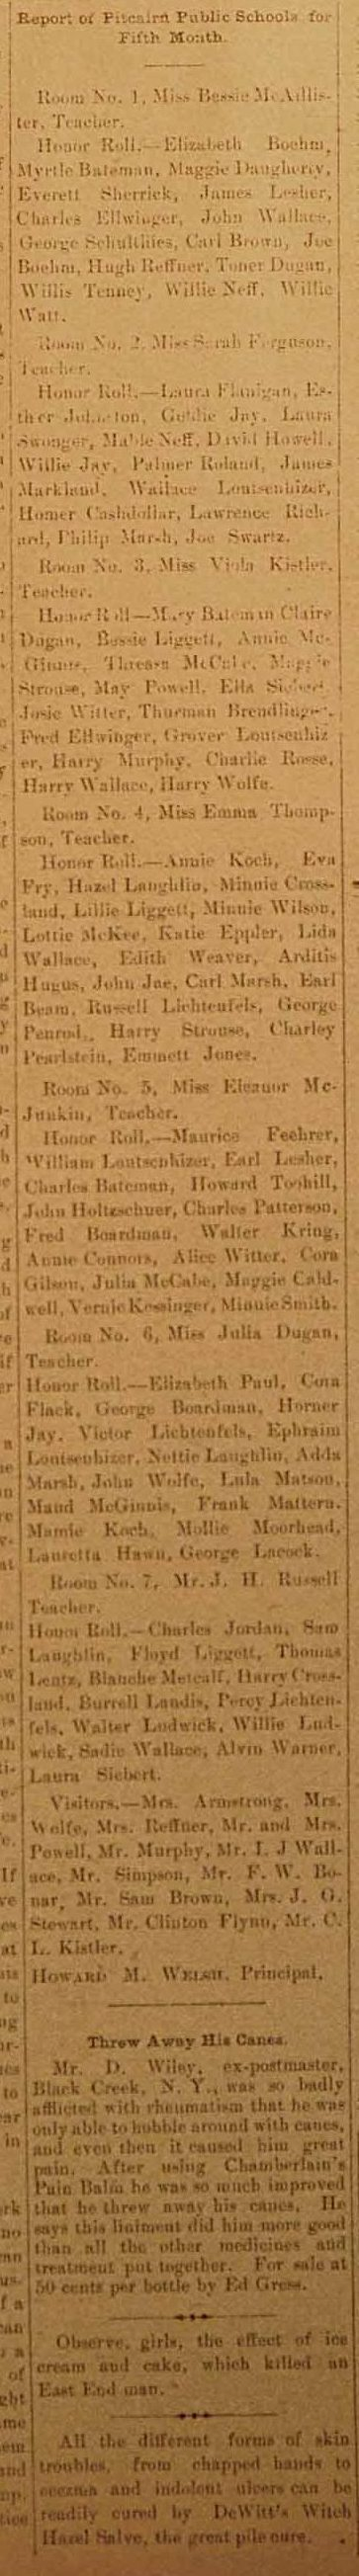 Class Honor Roll 1897